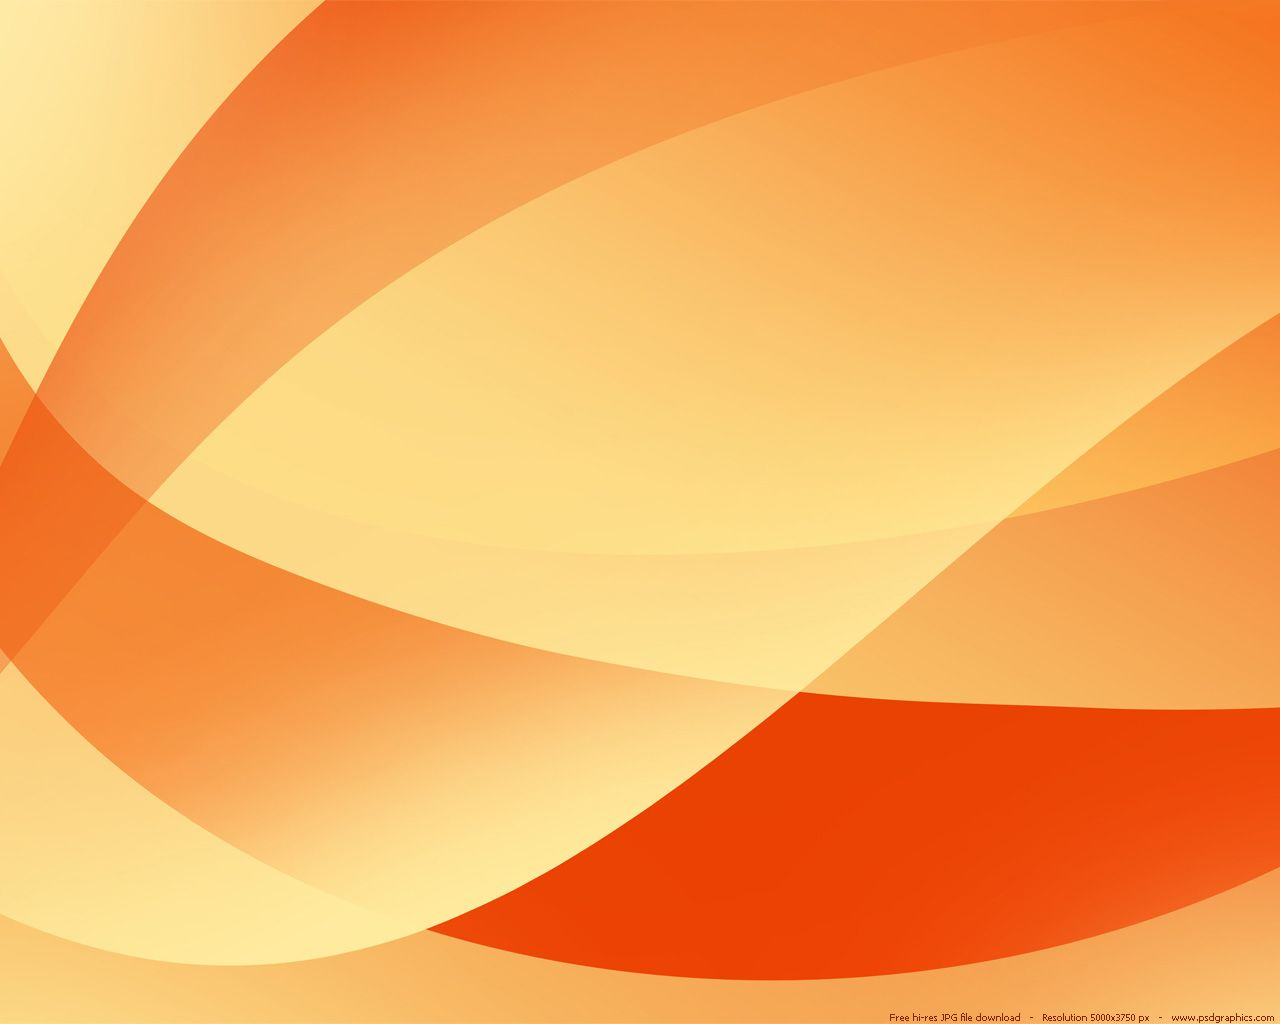 orange | abstract orange backgrounds | psdgraphics | shades of